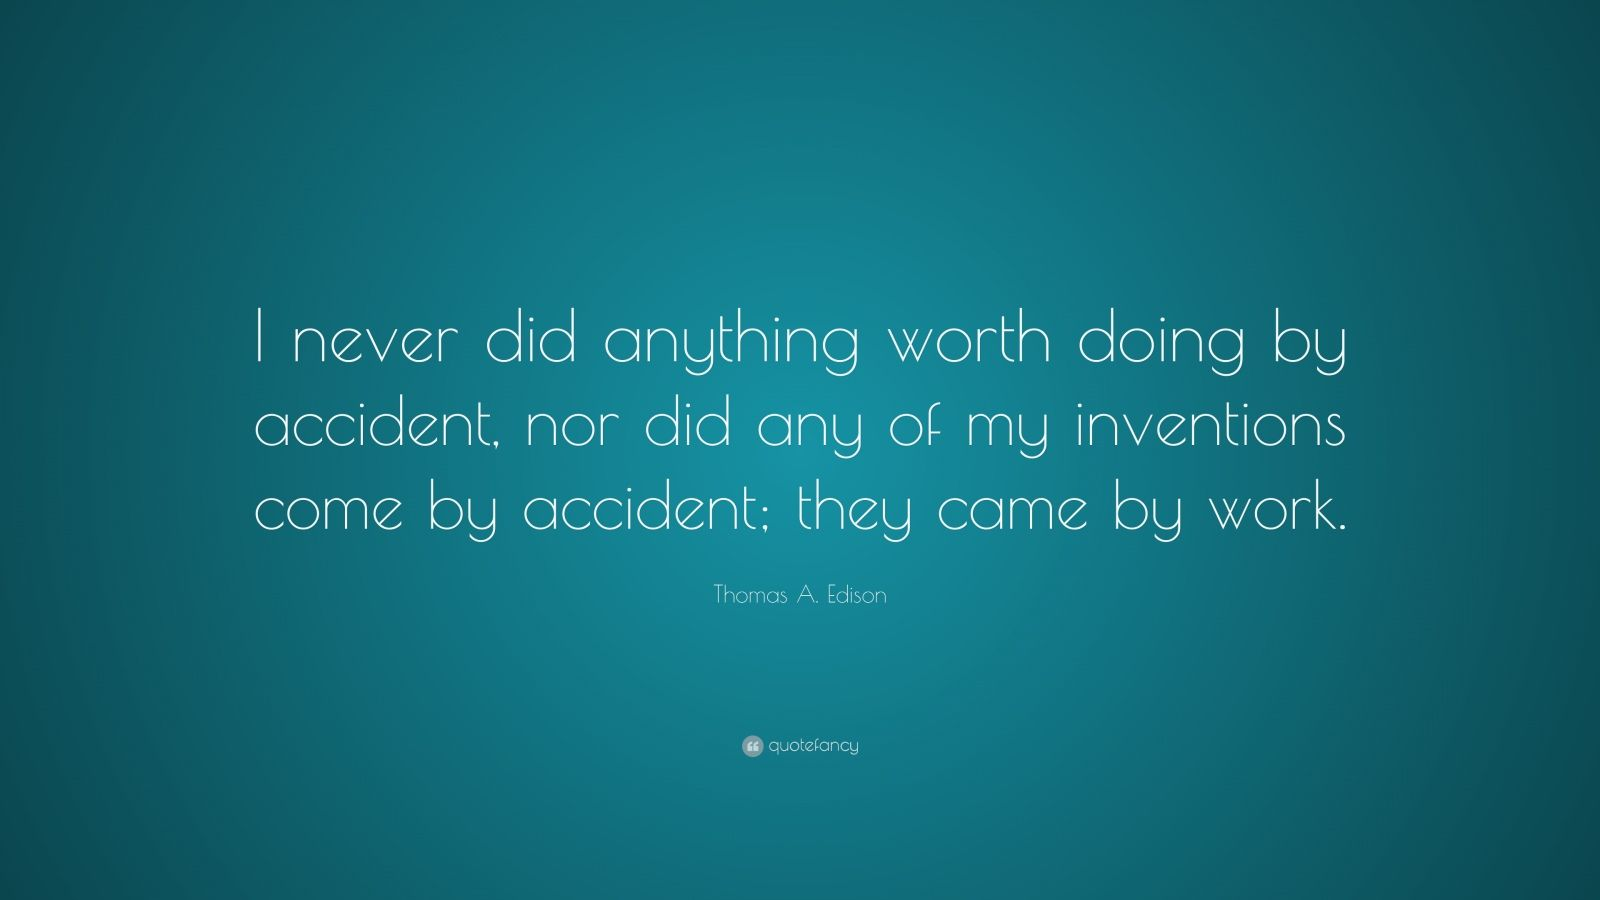 """Thomas A. Edison Quote: """"I never did anything worth doing by accident, nor did any of my inventions come by accident; they came by work."""""""